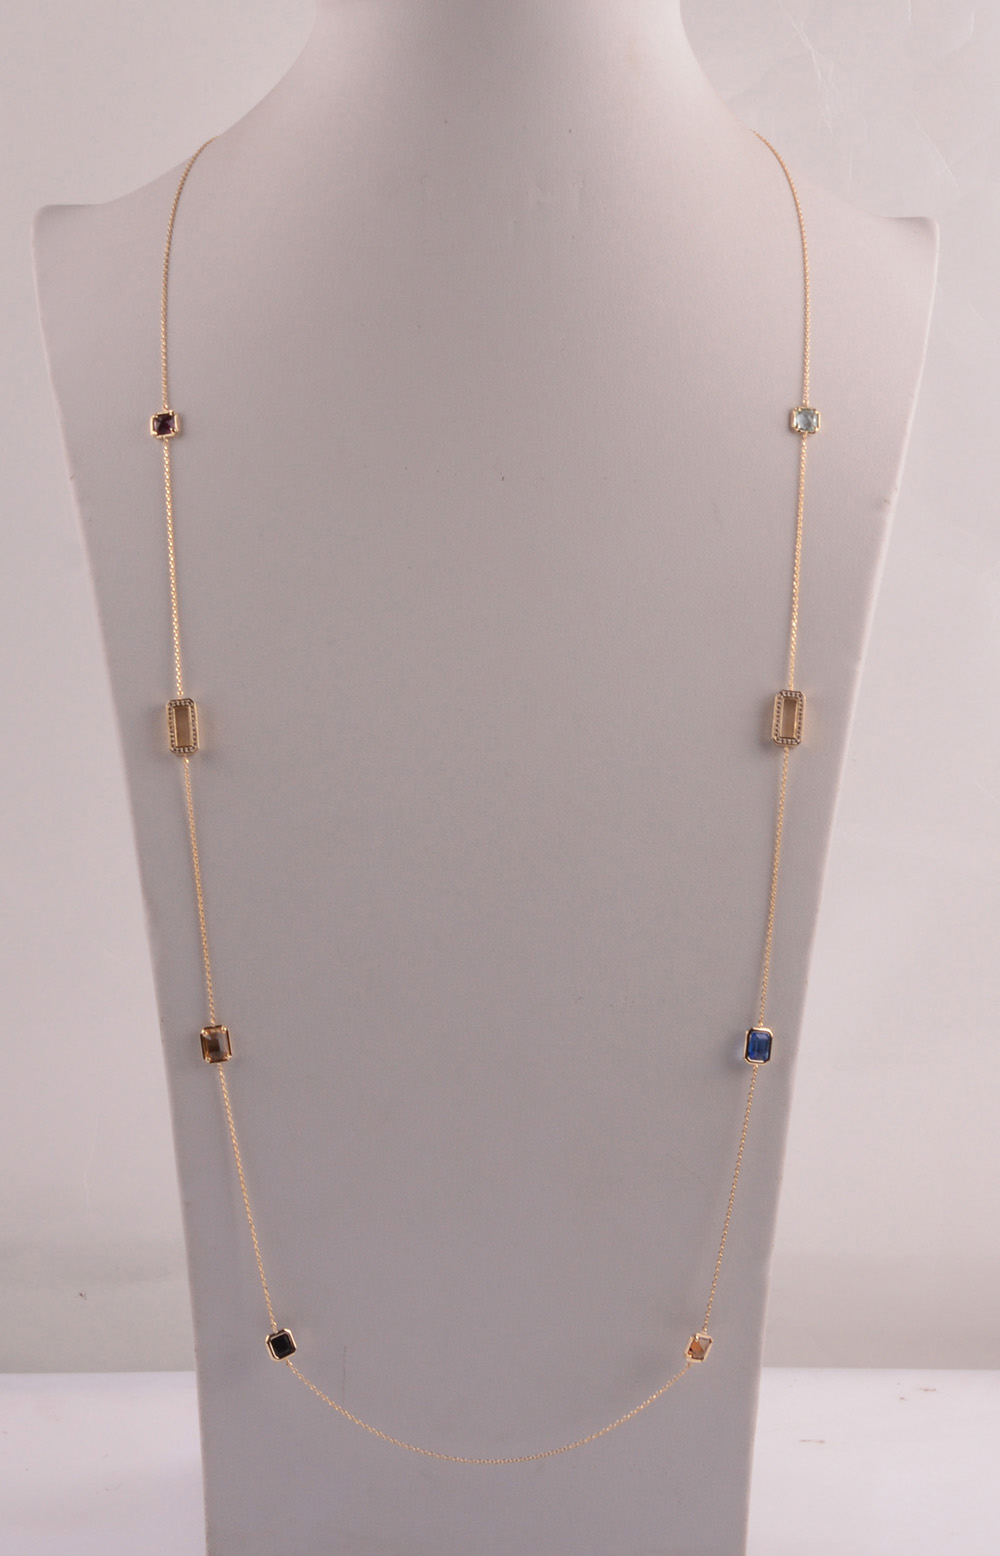 907523 Lady Long Necklace